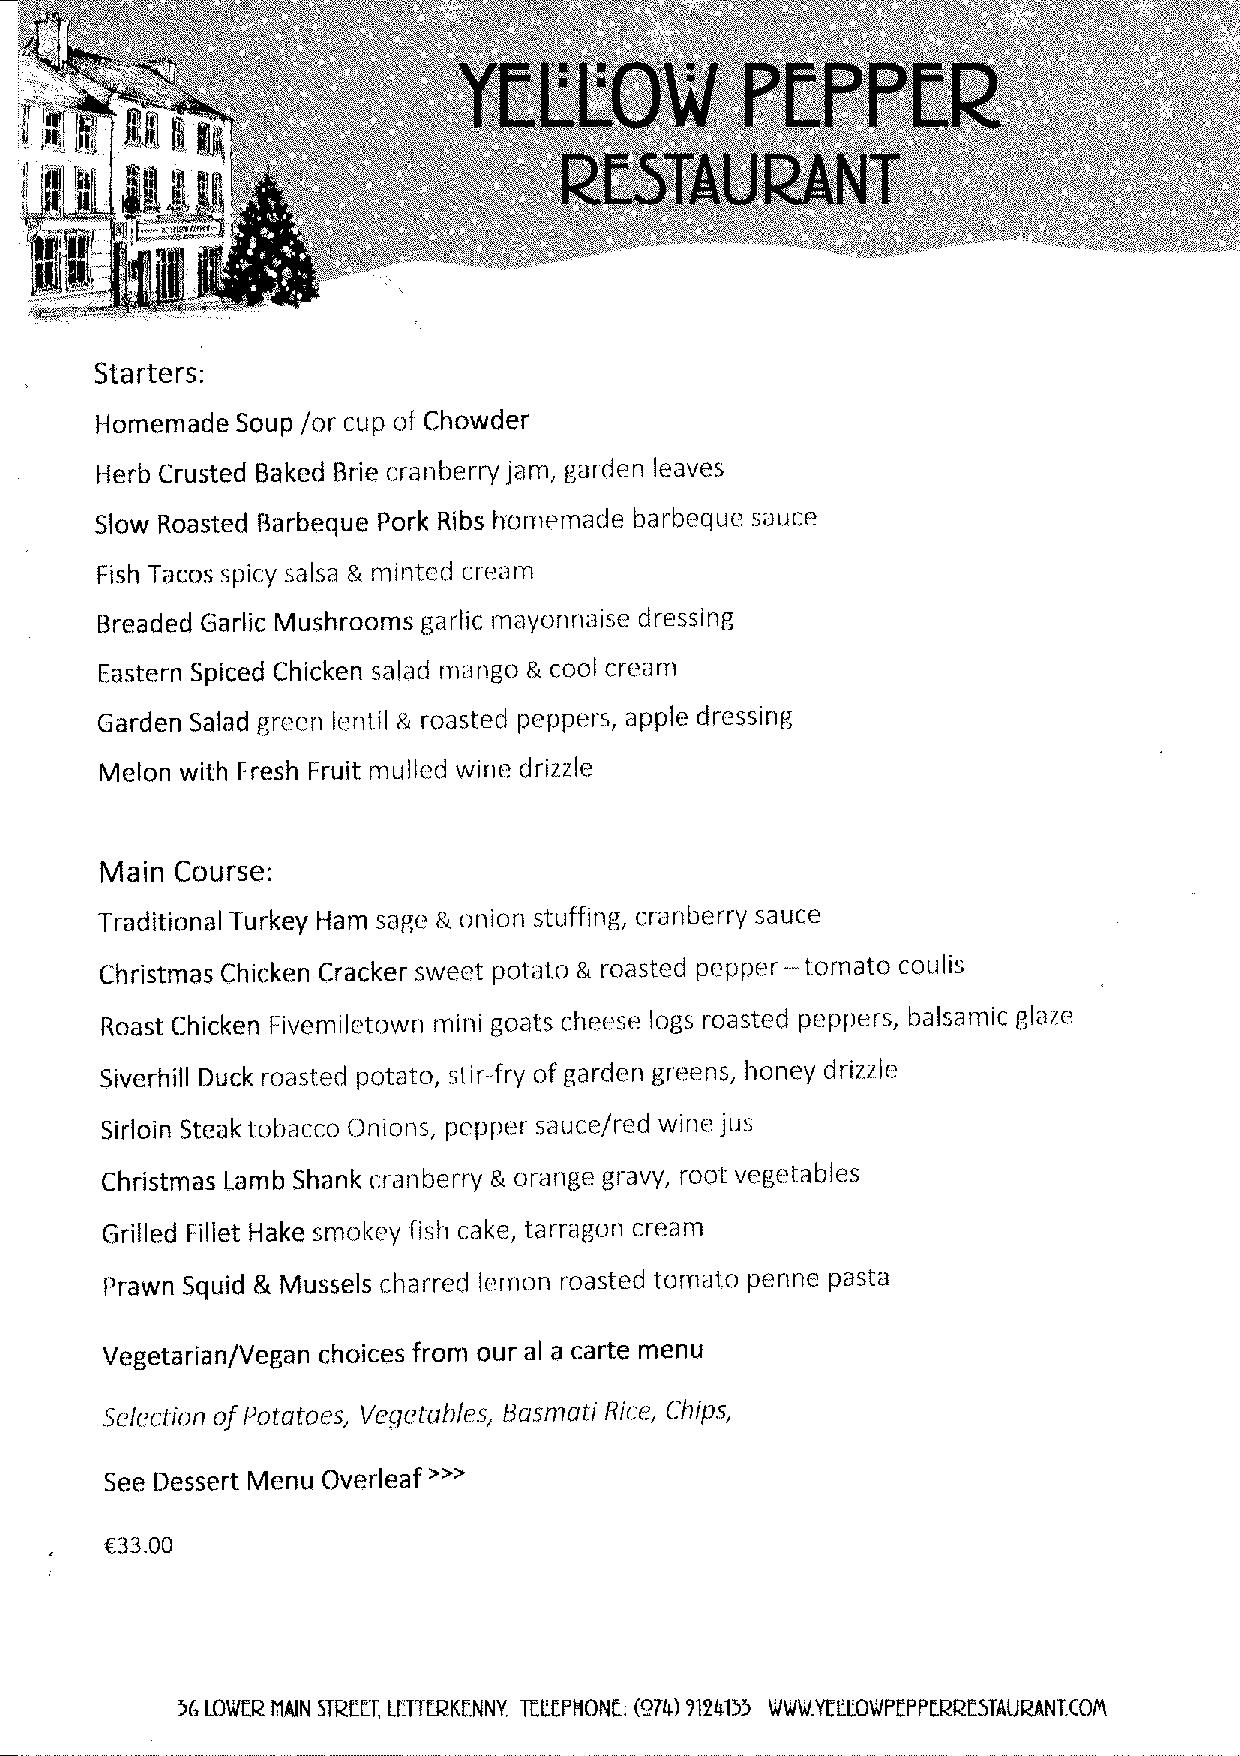 The Yellow Pepper Restaurant Christmas Menu 2019-page-001